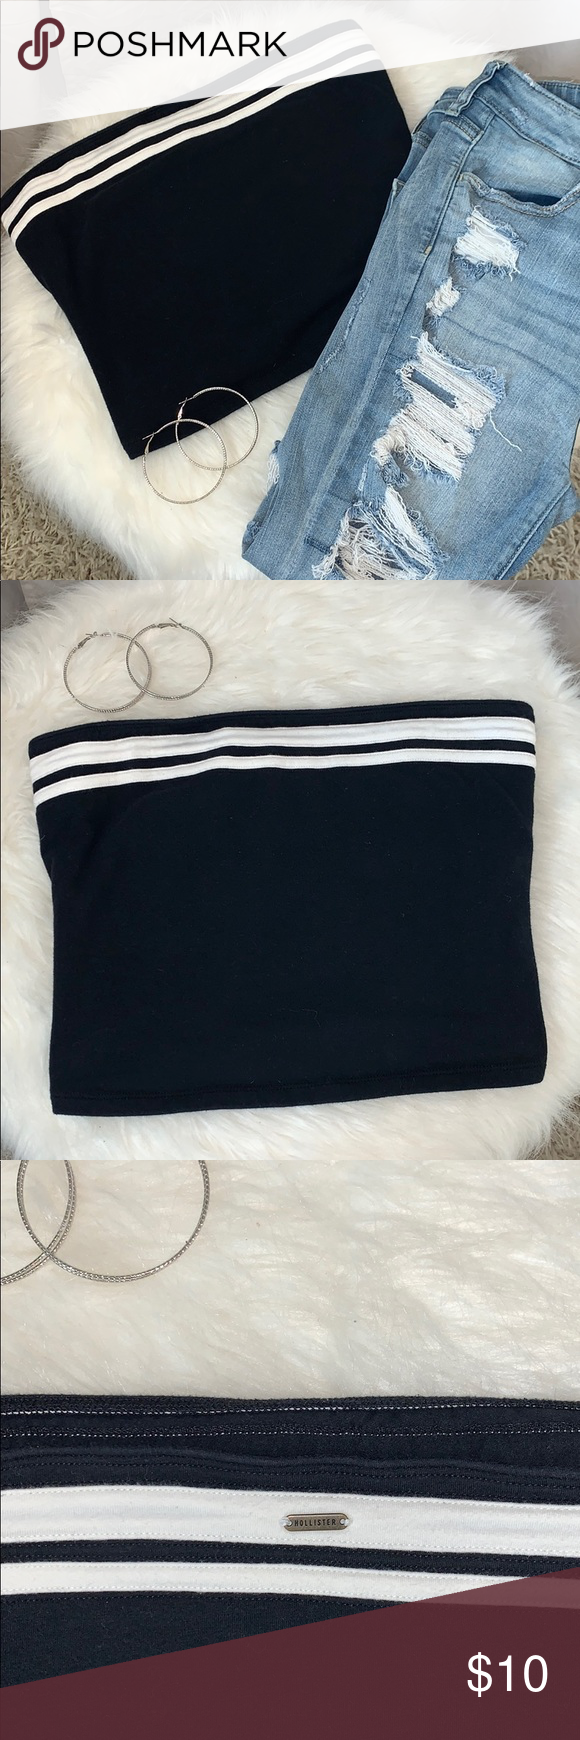 Hollister Striped Tube Top Navy blue and white Thick material I love offers and bundles! Hollister Tops #tubetopoutfits